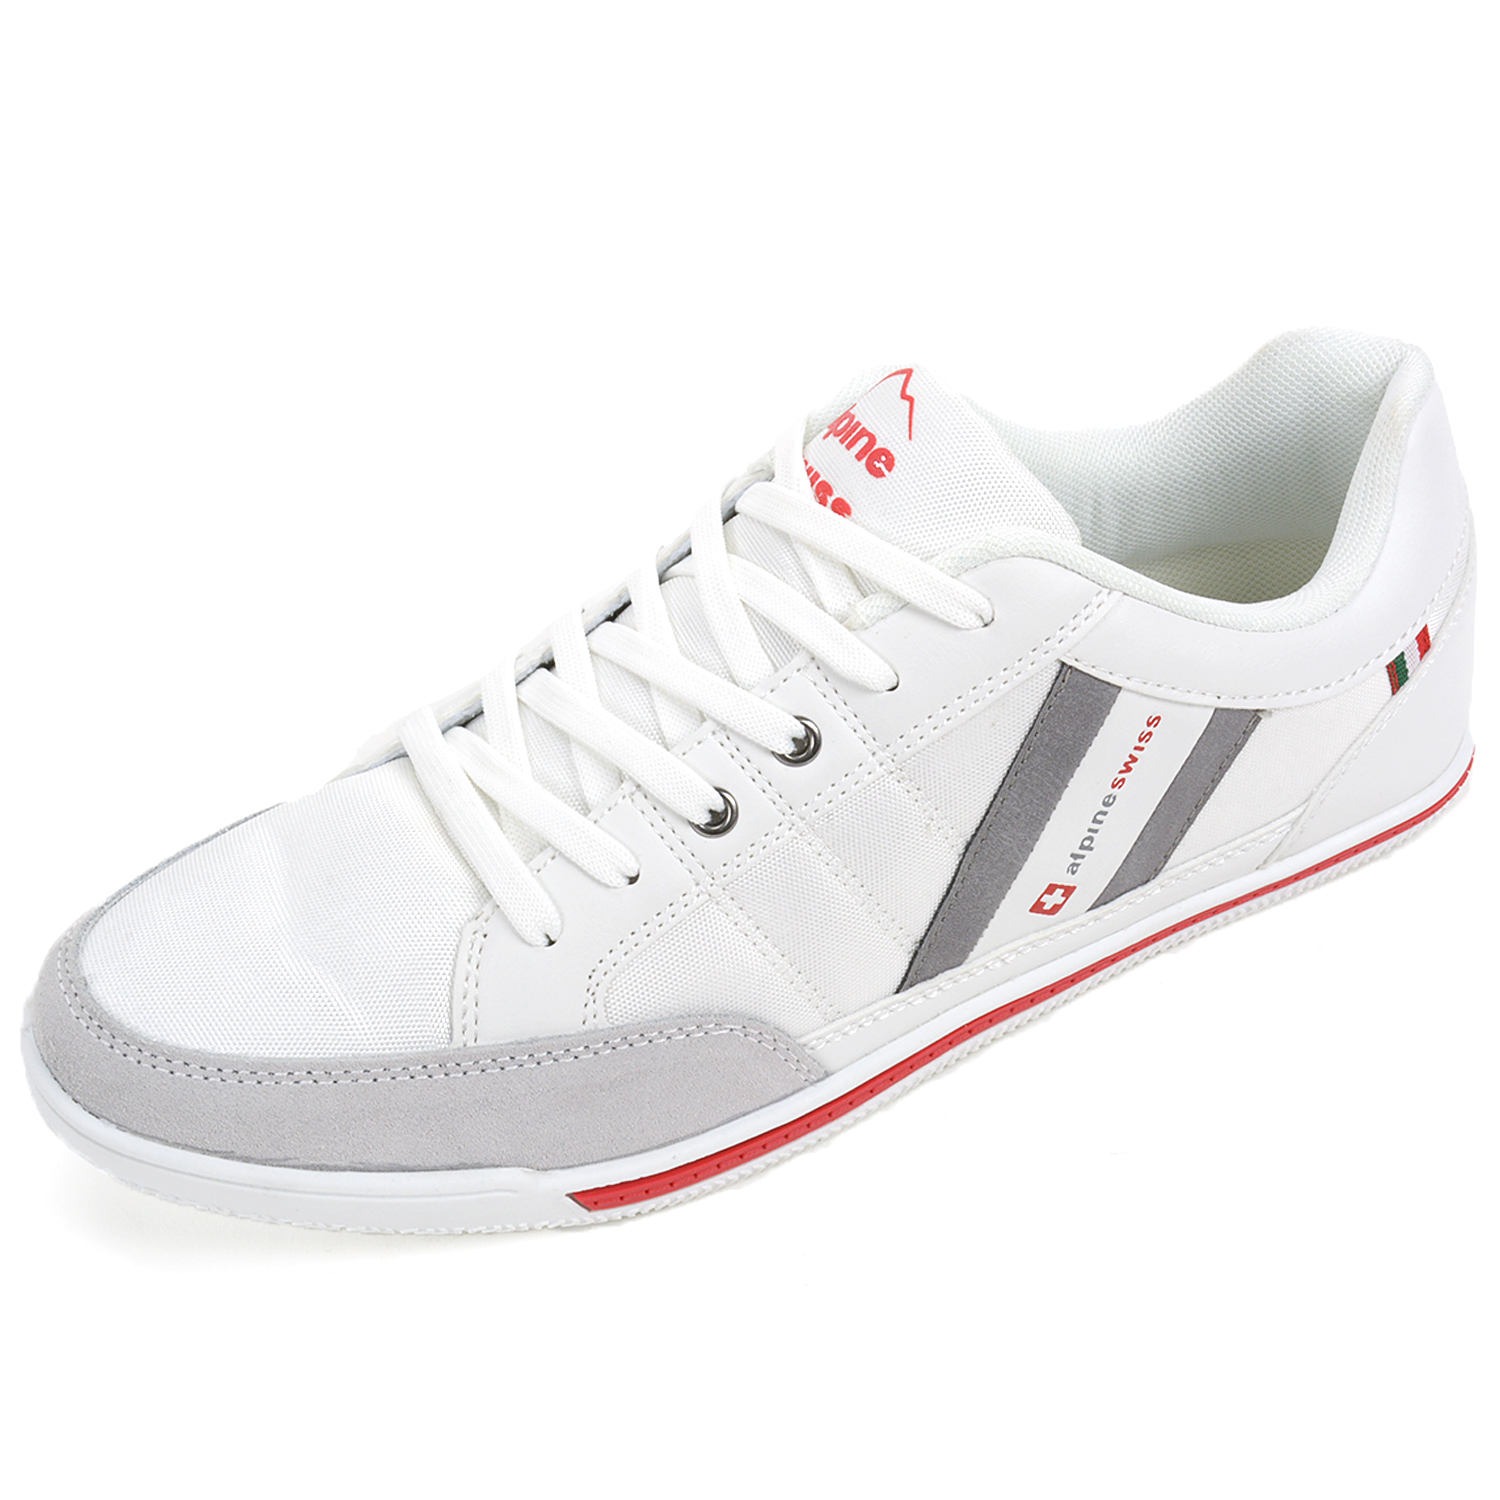 Mens Retro Athletic Shoes